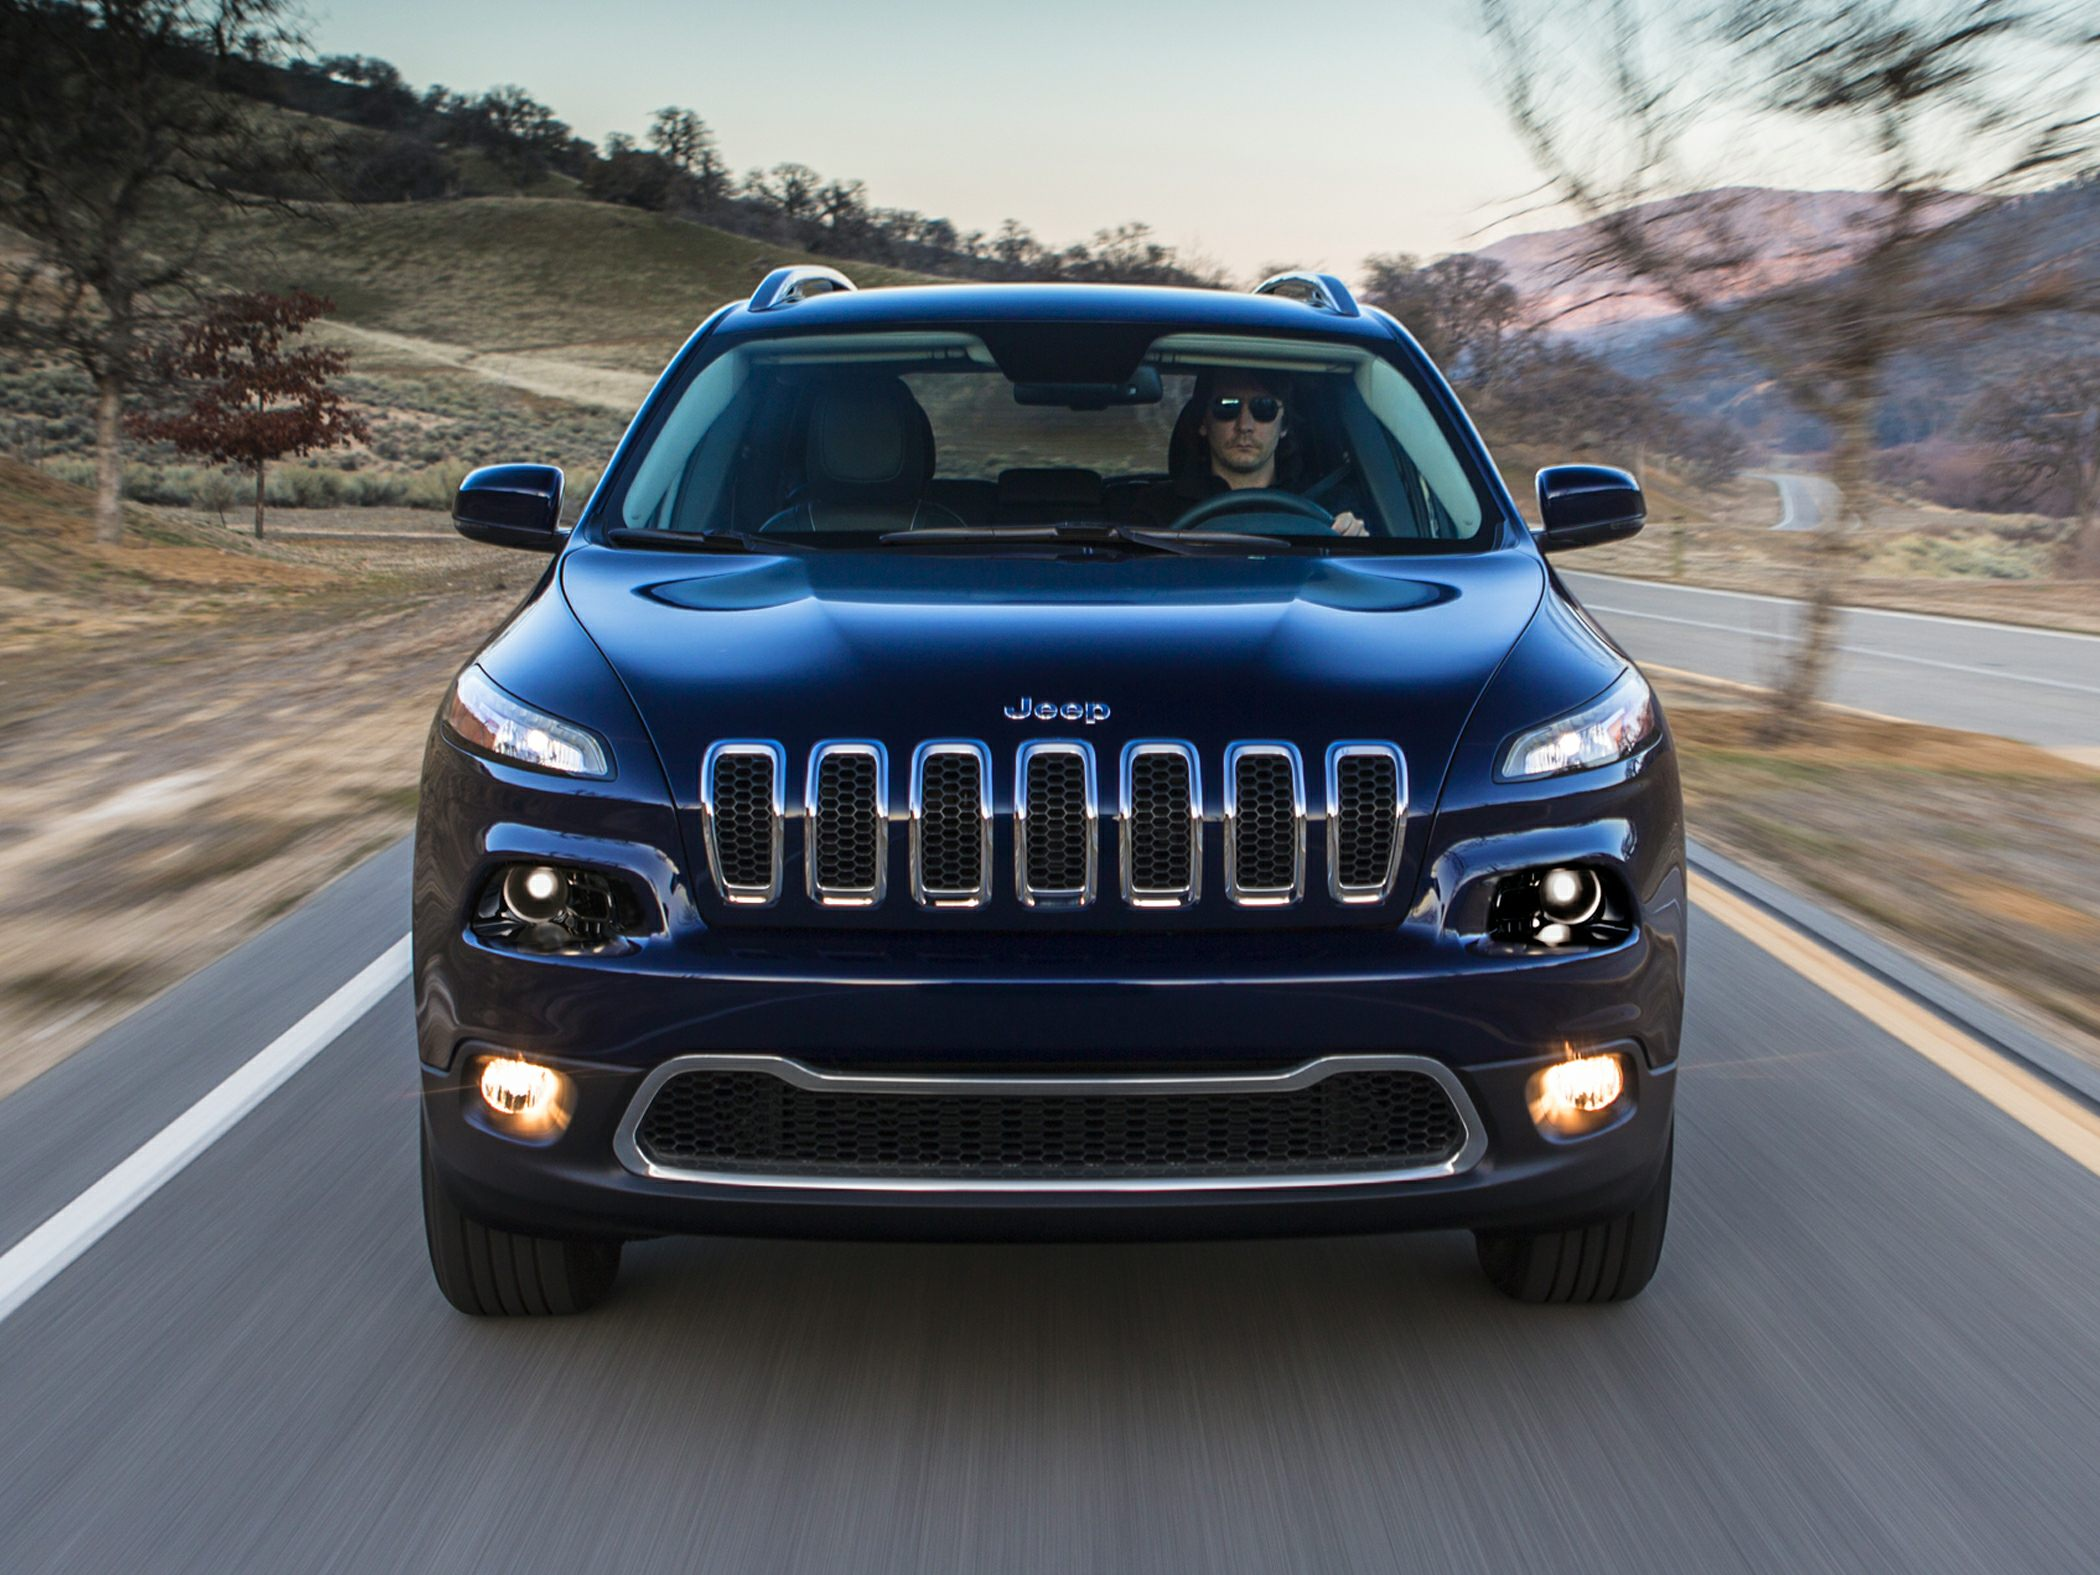 2016 jeep cherokee styles features highlights. Black Bedroom Furniture Sets. Home Design Ideas